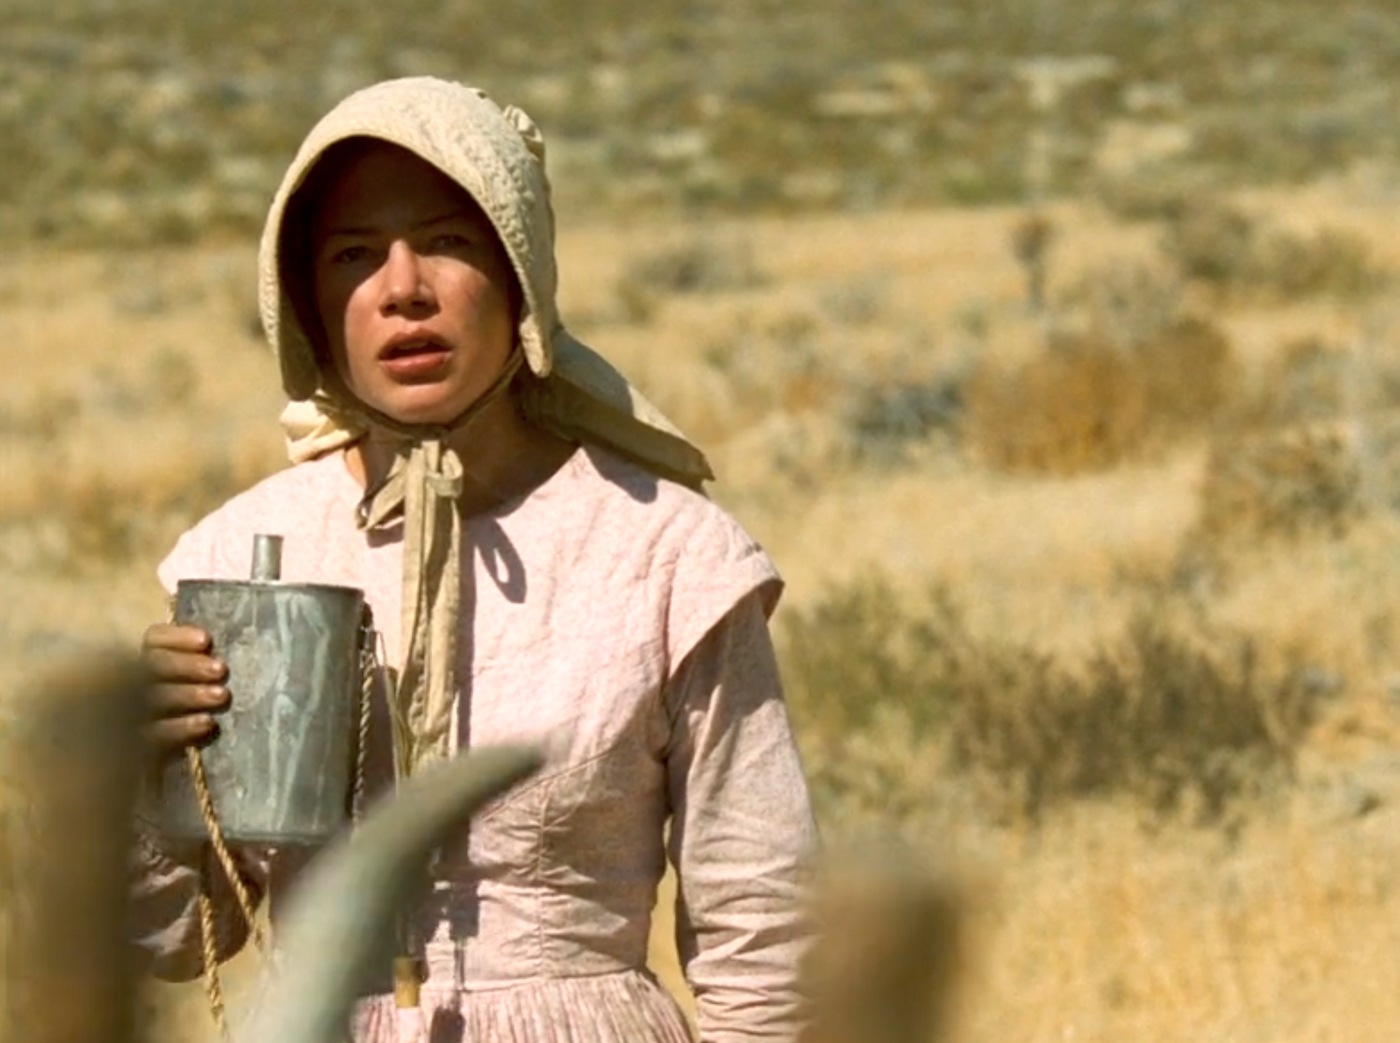 Que regarde Mrs. Tetherow (Michelle Williams)?